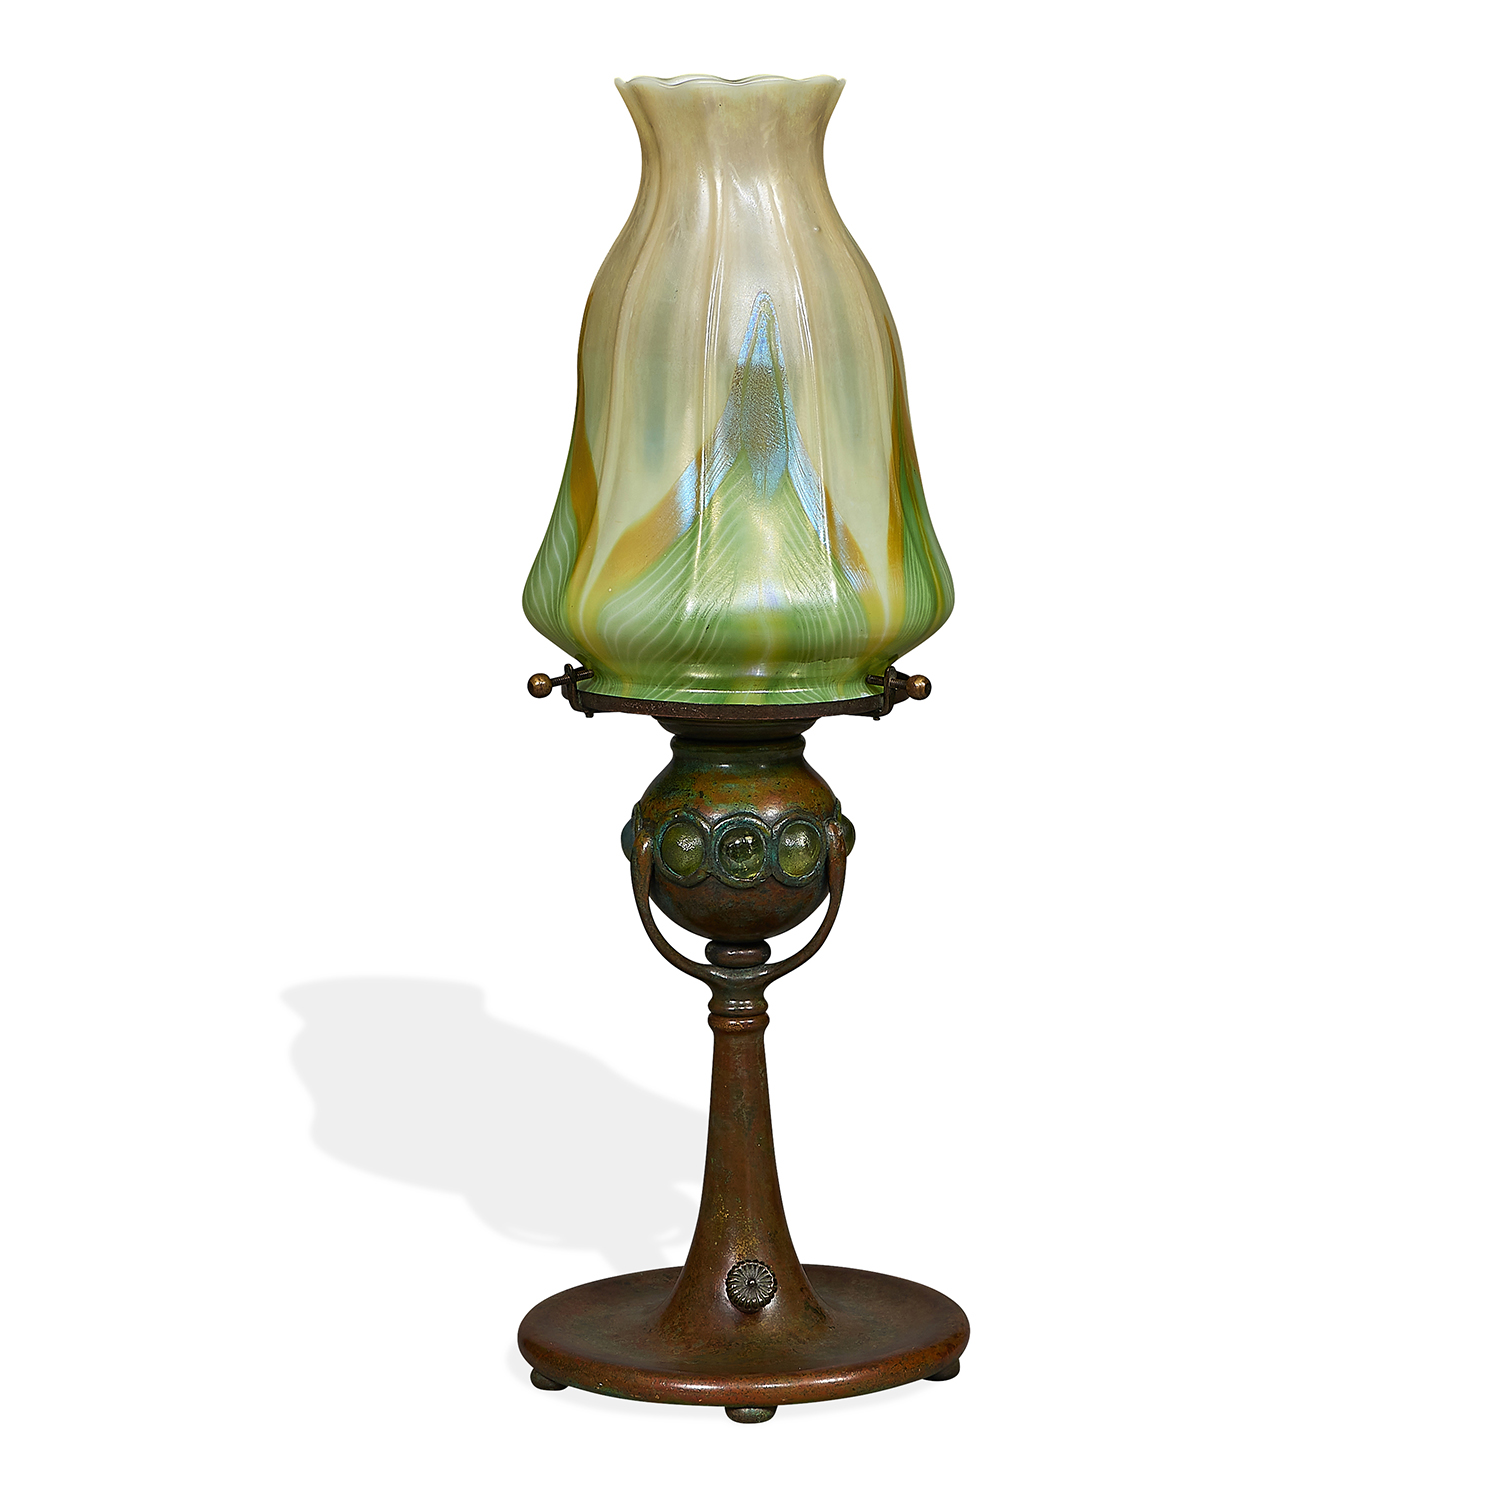 "Tiffany Studios boudoir lamp: Pulled Feather shade on jeweled candlestick base, #485 5 3/8""dia x 15 3/8""h"